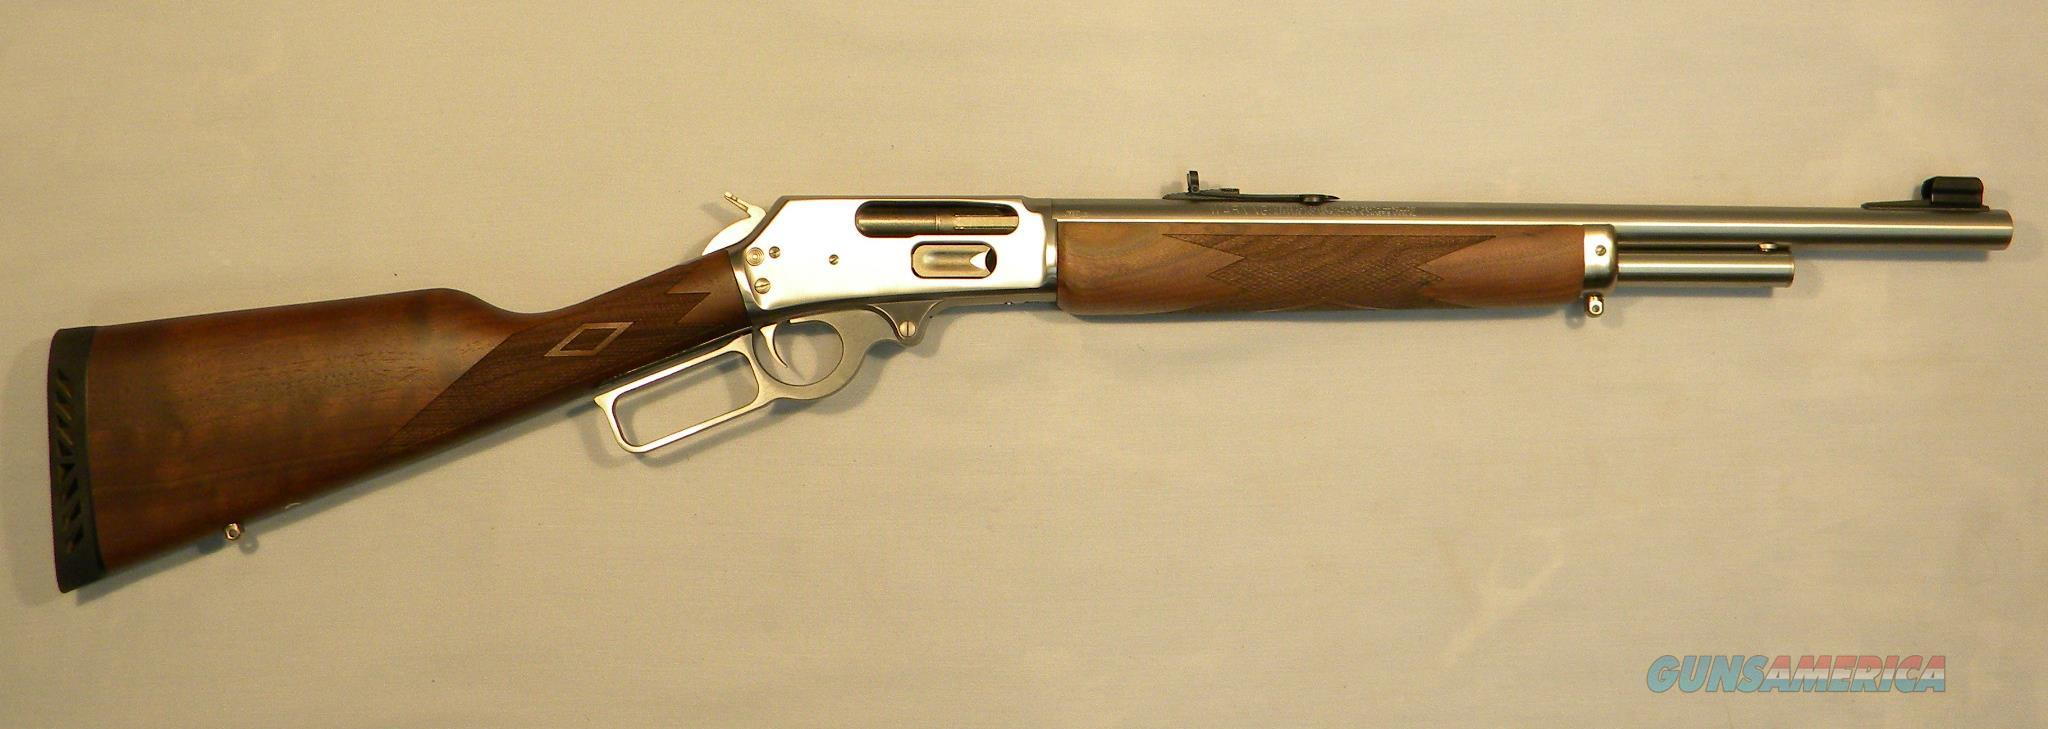 Marlin 1895 GS, .45-70 Gov't Lever-Action Rifle, Stainless  Guns > Rifles > Marlin Rifles > Modern > Lever Action